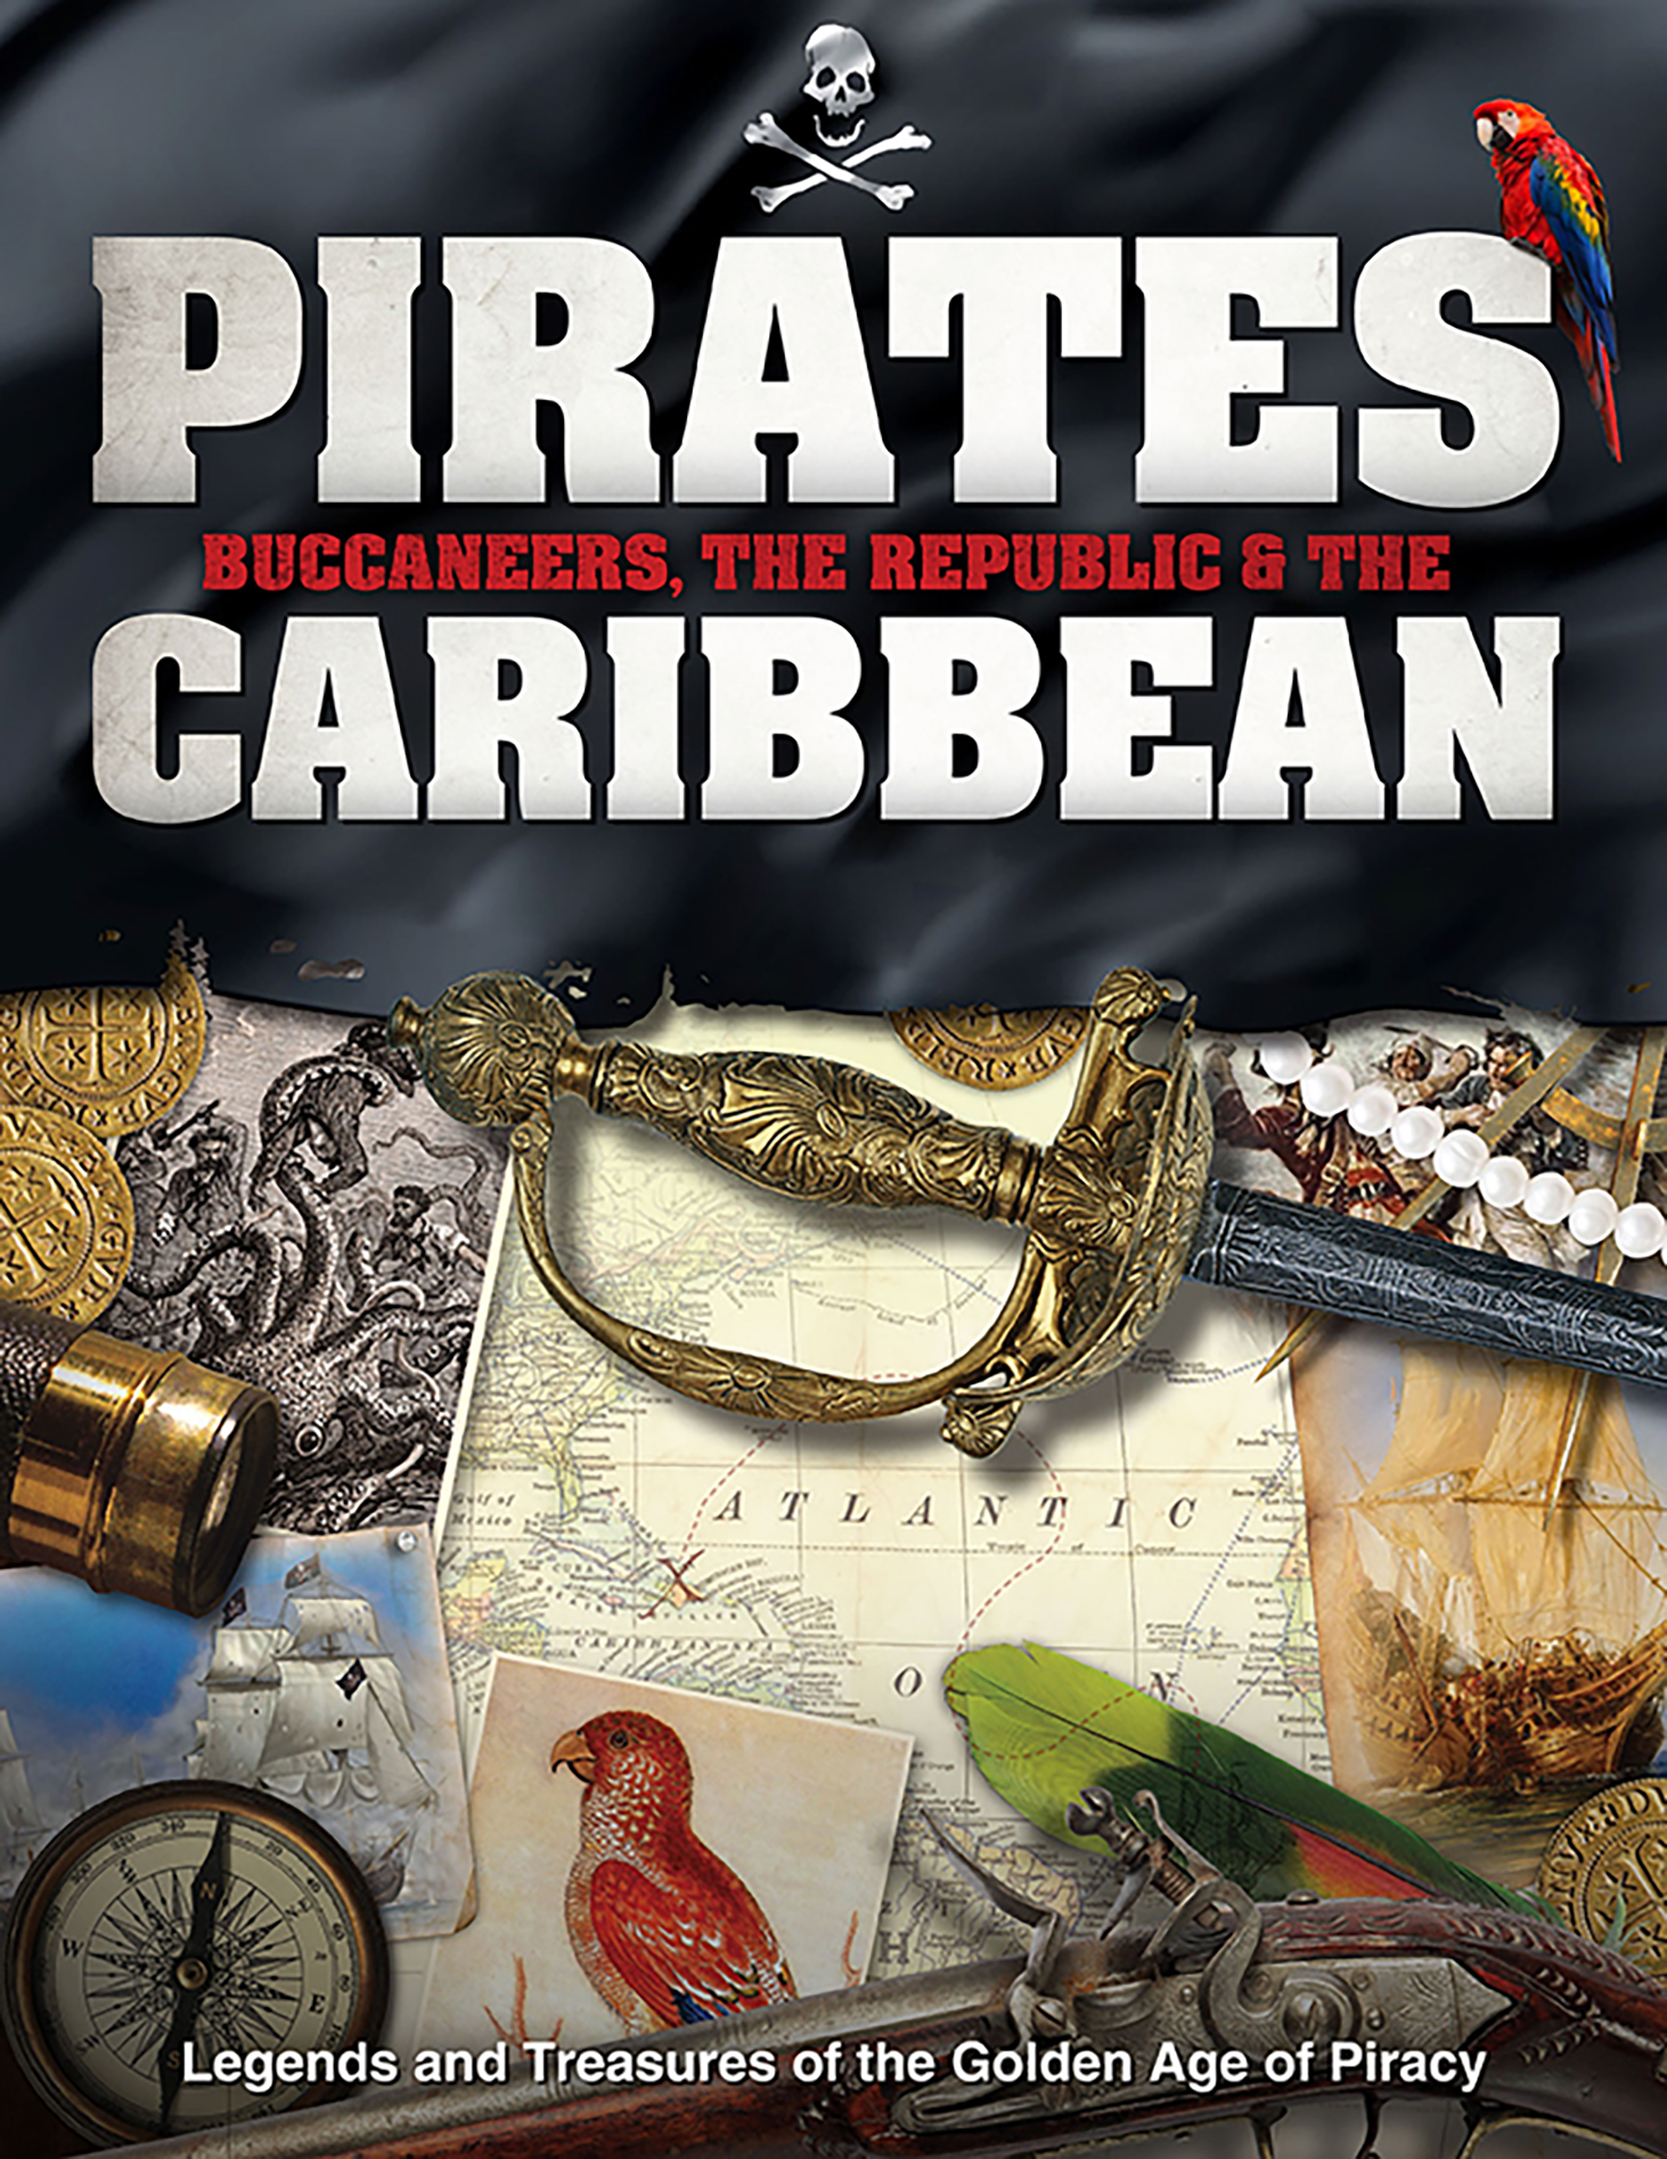 Pirates, Buccaneers, Republic & Caribbean